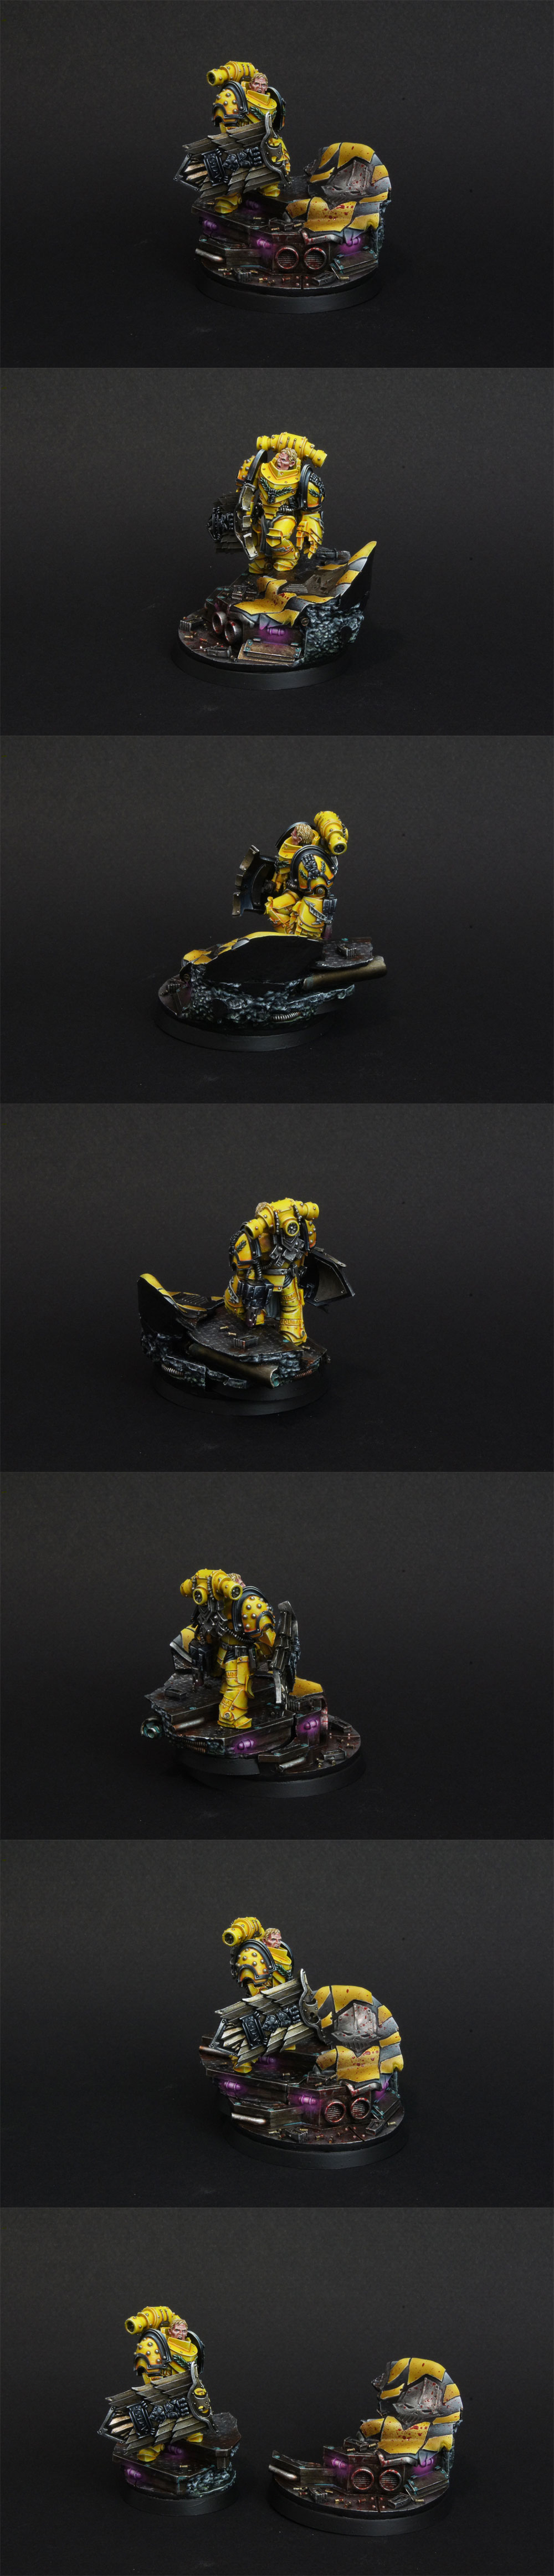 Space-Marine-Imperial-Fist